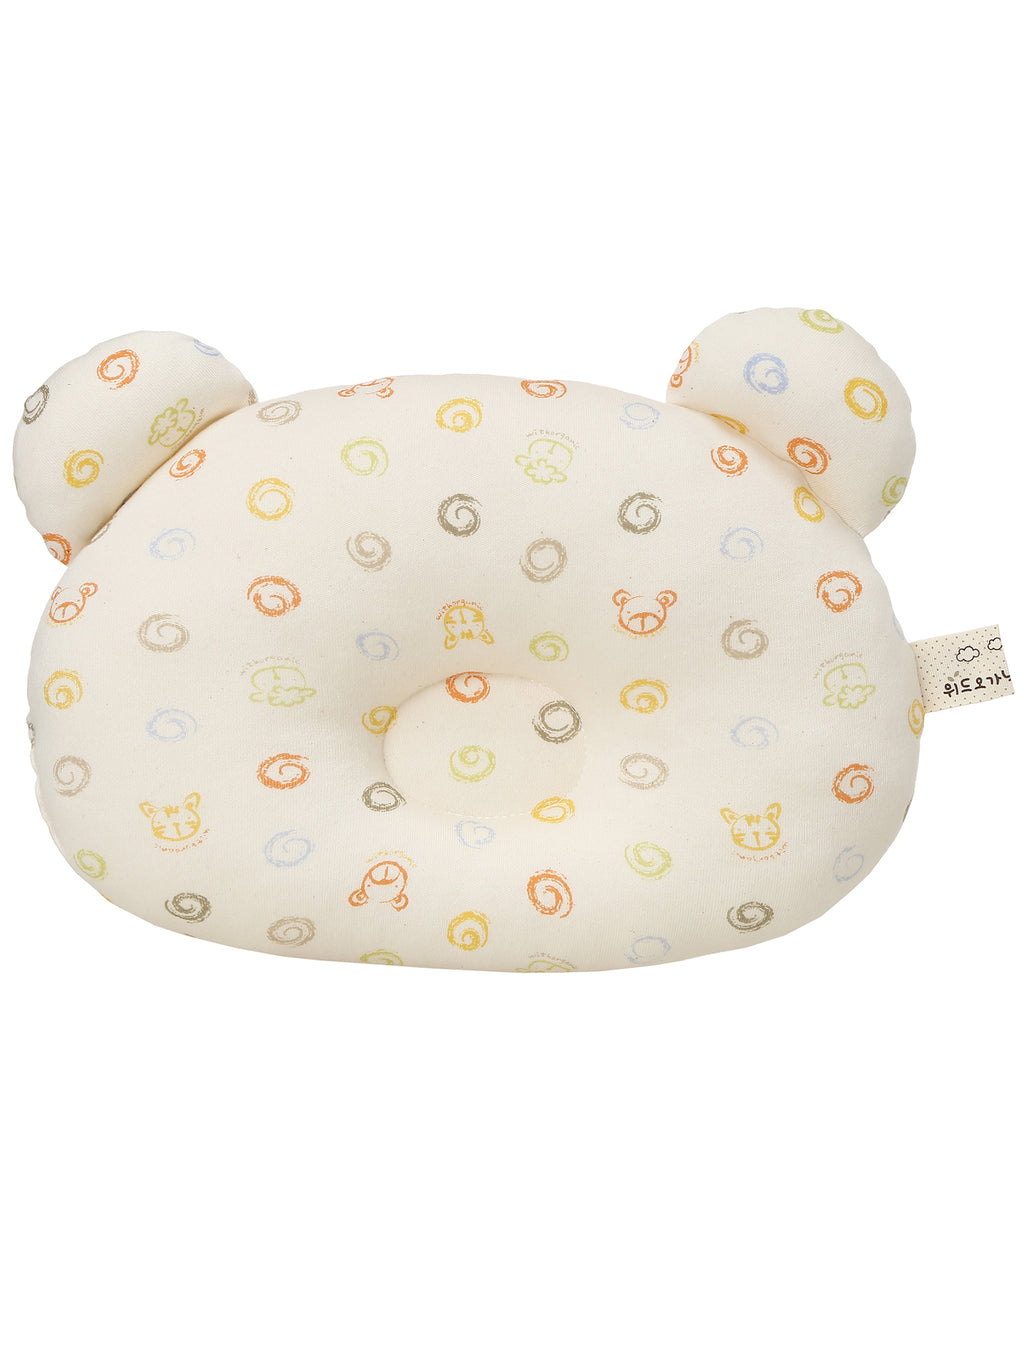 Infant Toddler Head Shaping Pillow for Sleeping - HiOrganic